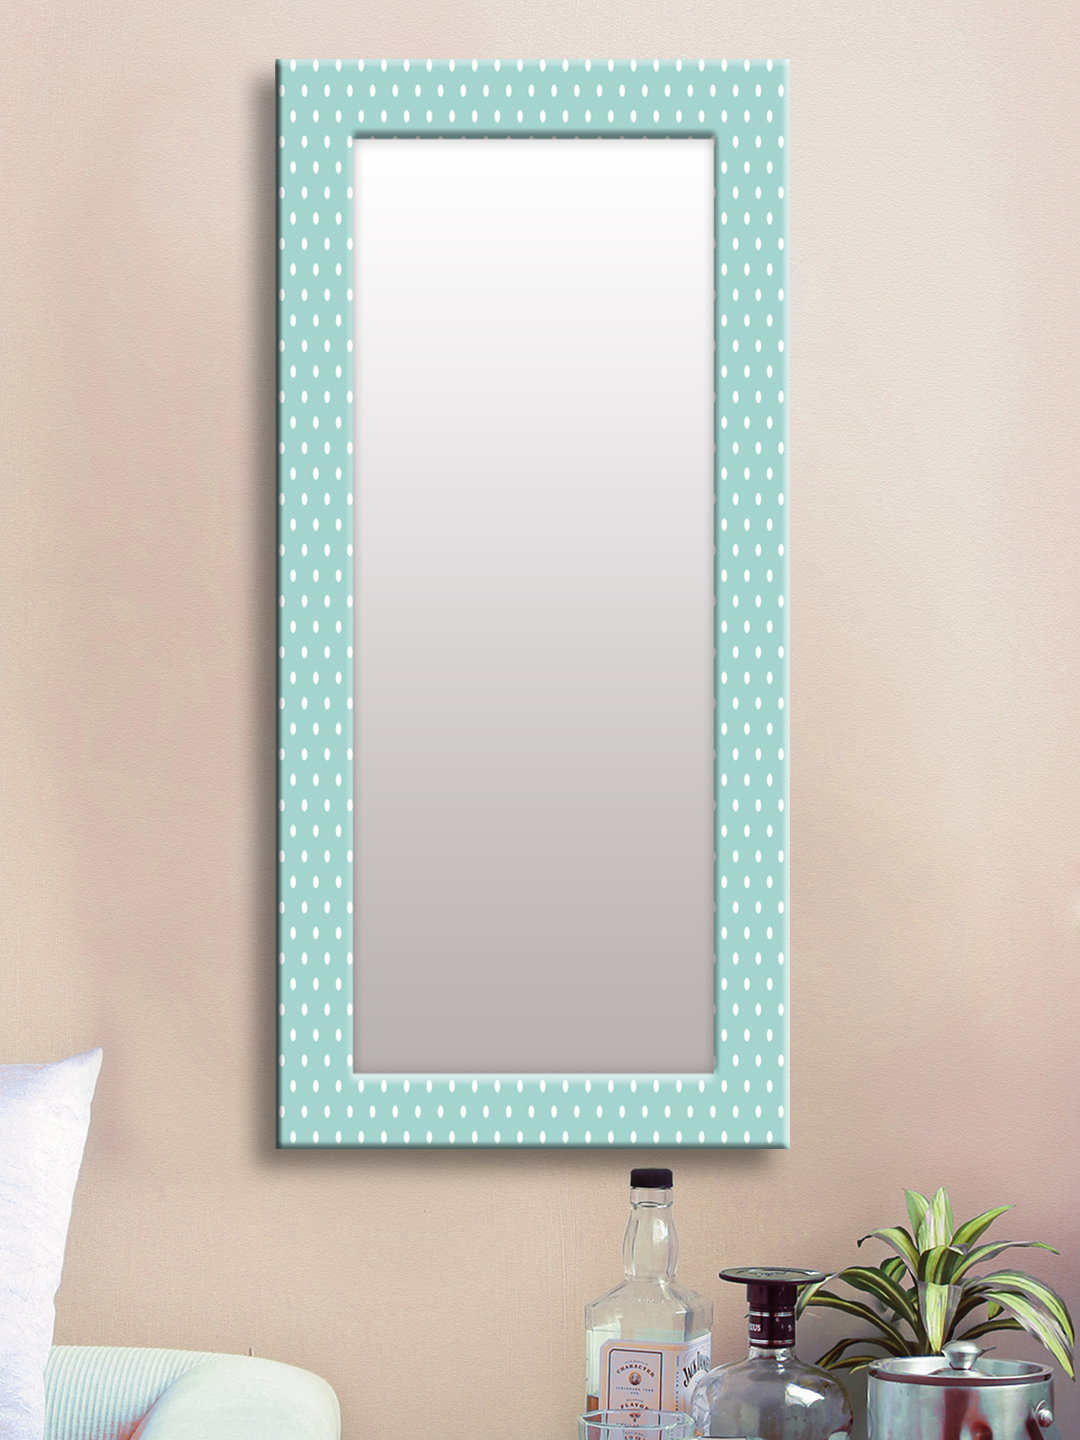 Well Known Buy 999Store Blue Framed Wall Mirror – Mirrors For Unisex 8390653 For Blue Framed Wall Mirrors (View 16 of 20)